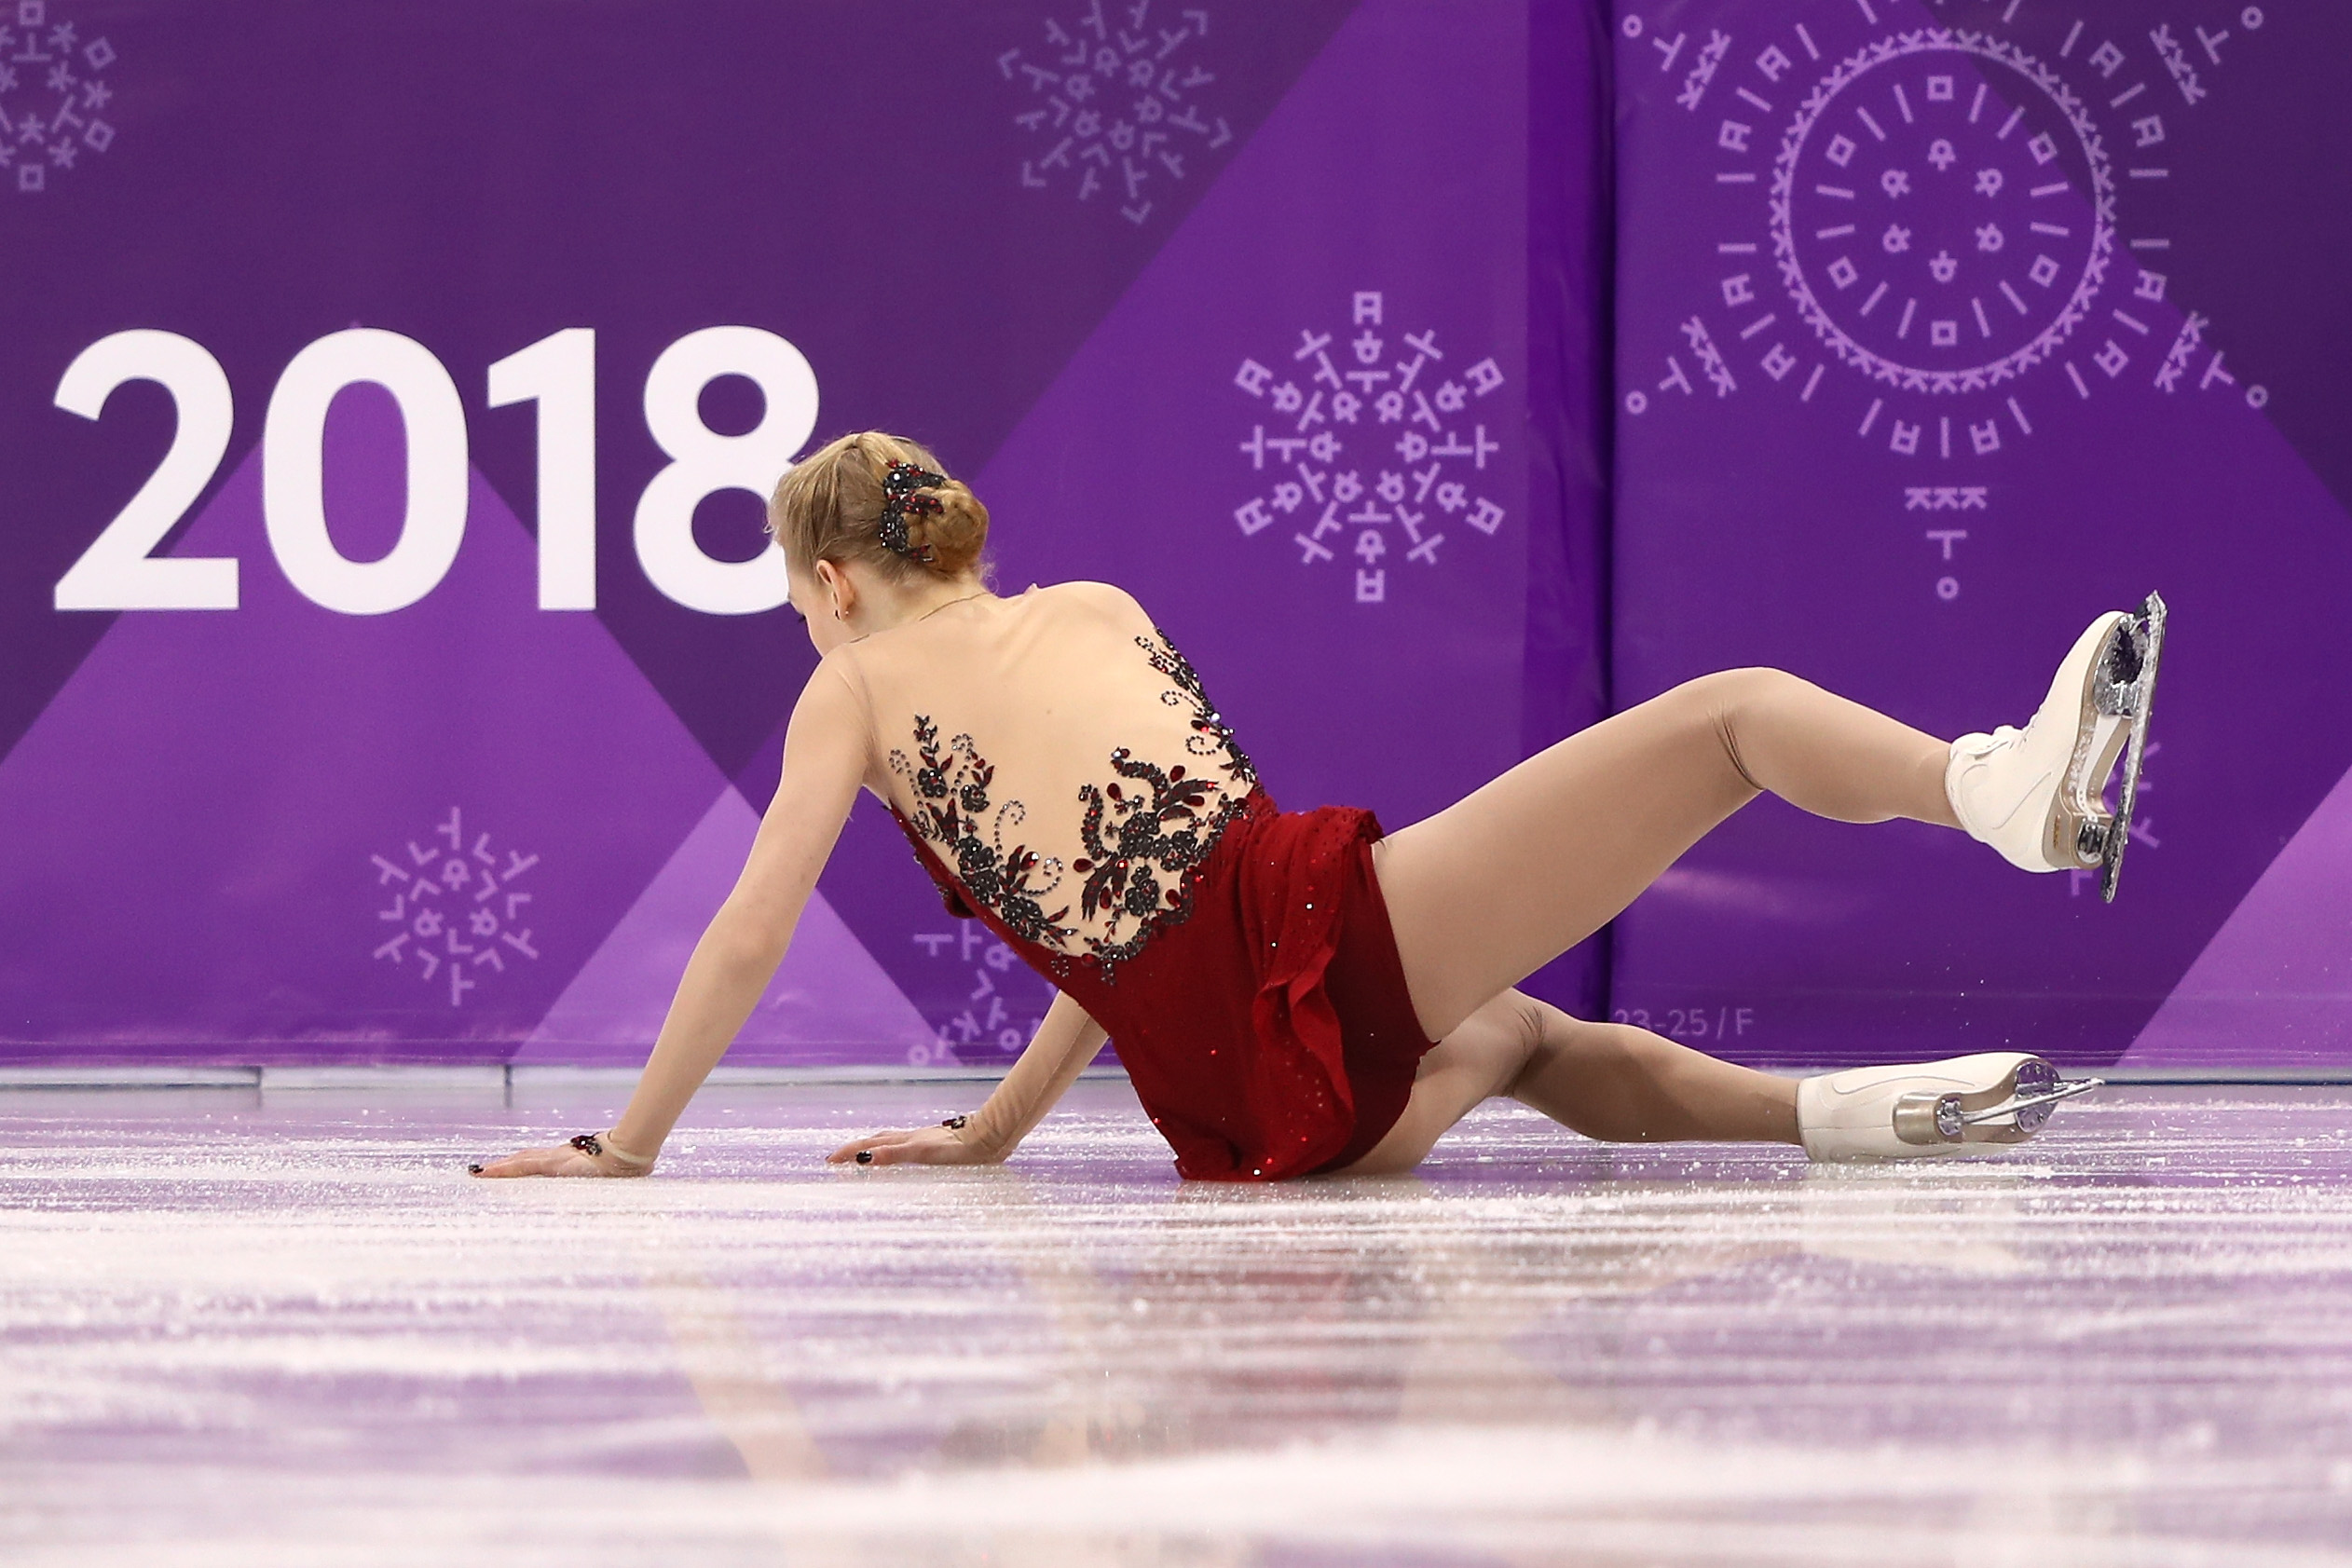 Bradie Tennell falls while competing during the Ladies Single Skating Short Program on day twelve of the PyeongChang 2018 Winter Olympic Games at Gangneung Ice Arena on February 21, 2018 in Gangneung, South Korea